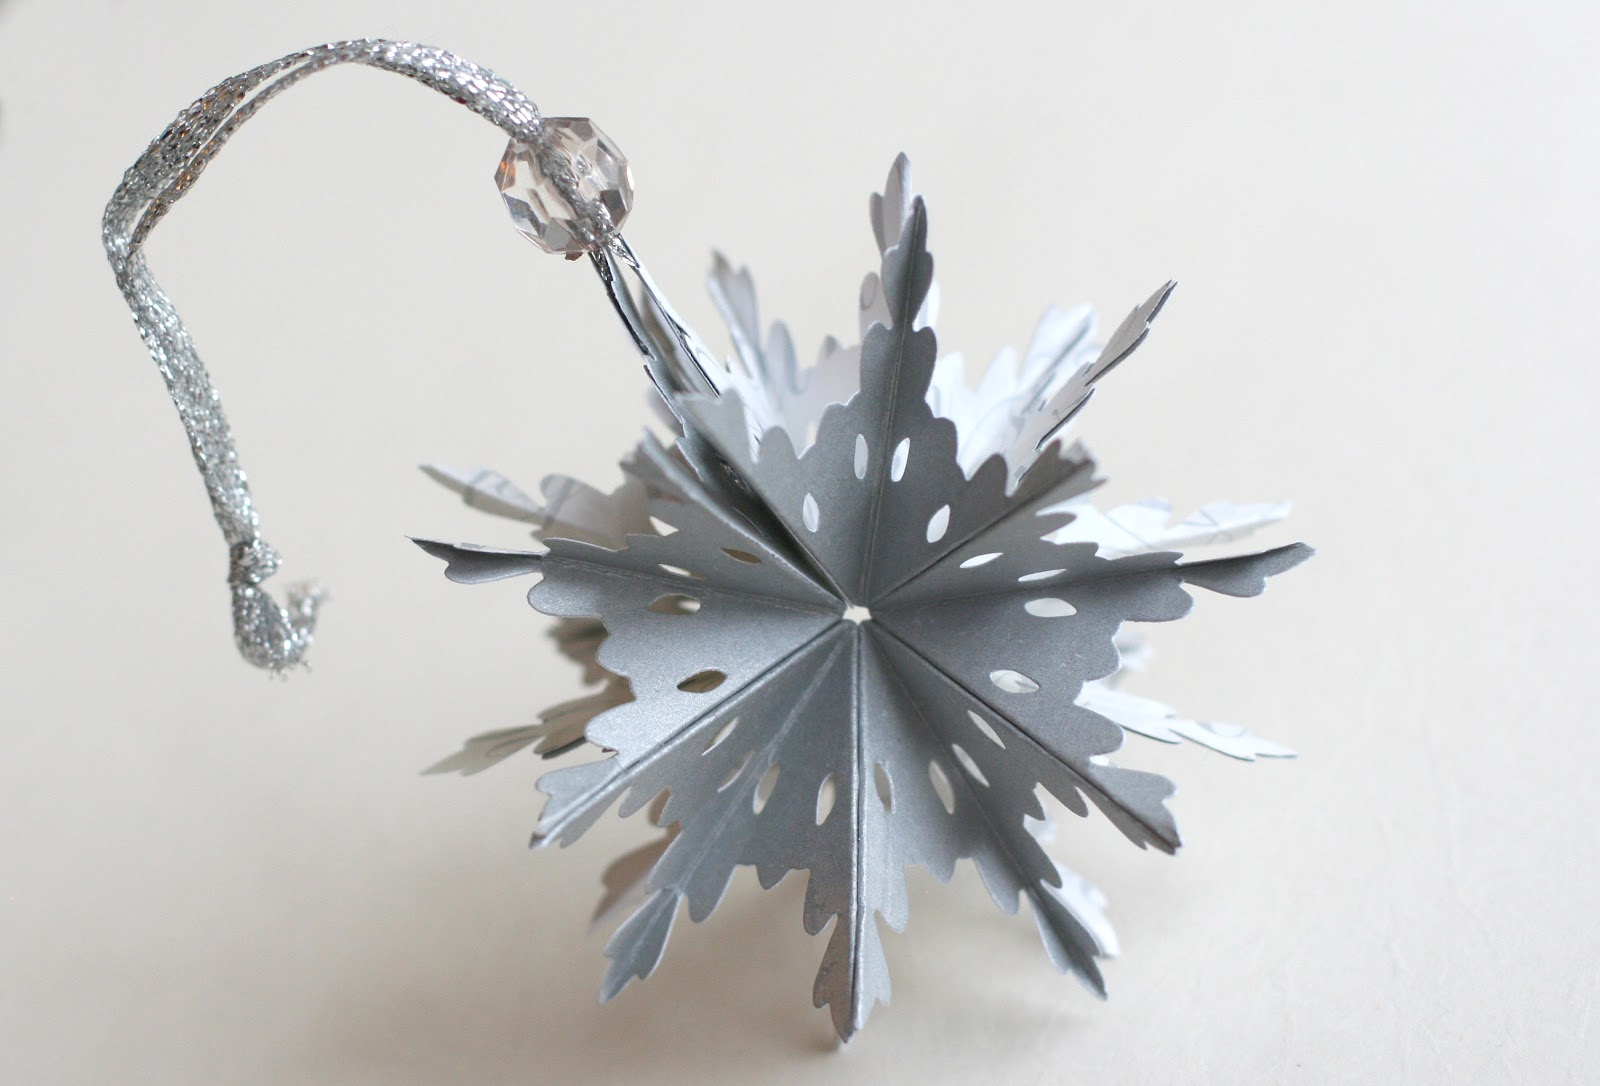 Make snowflake ornaments - This One Is A Snowflake Silver With Script On The